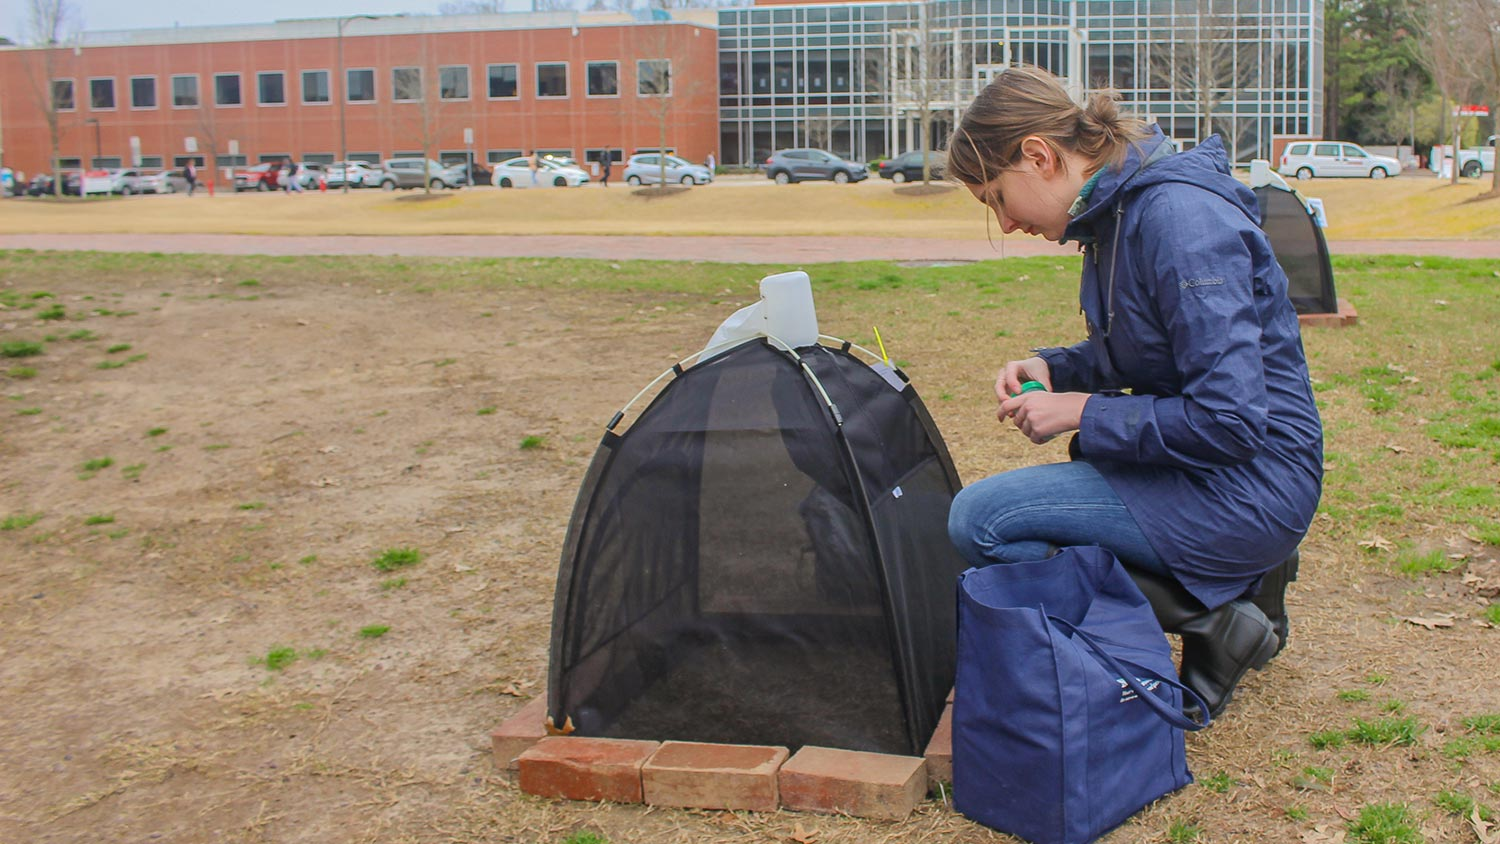 Young woman next to a small tent collecting data for research